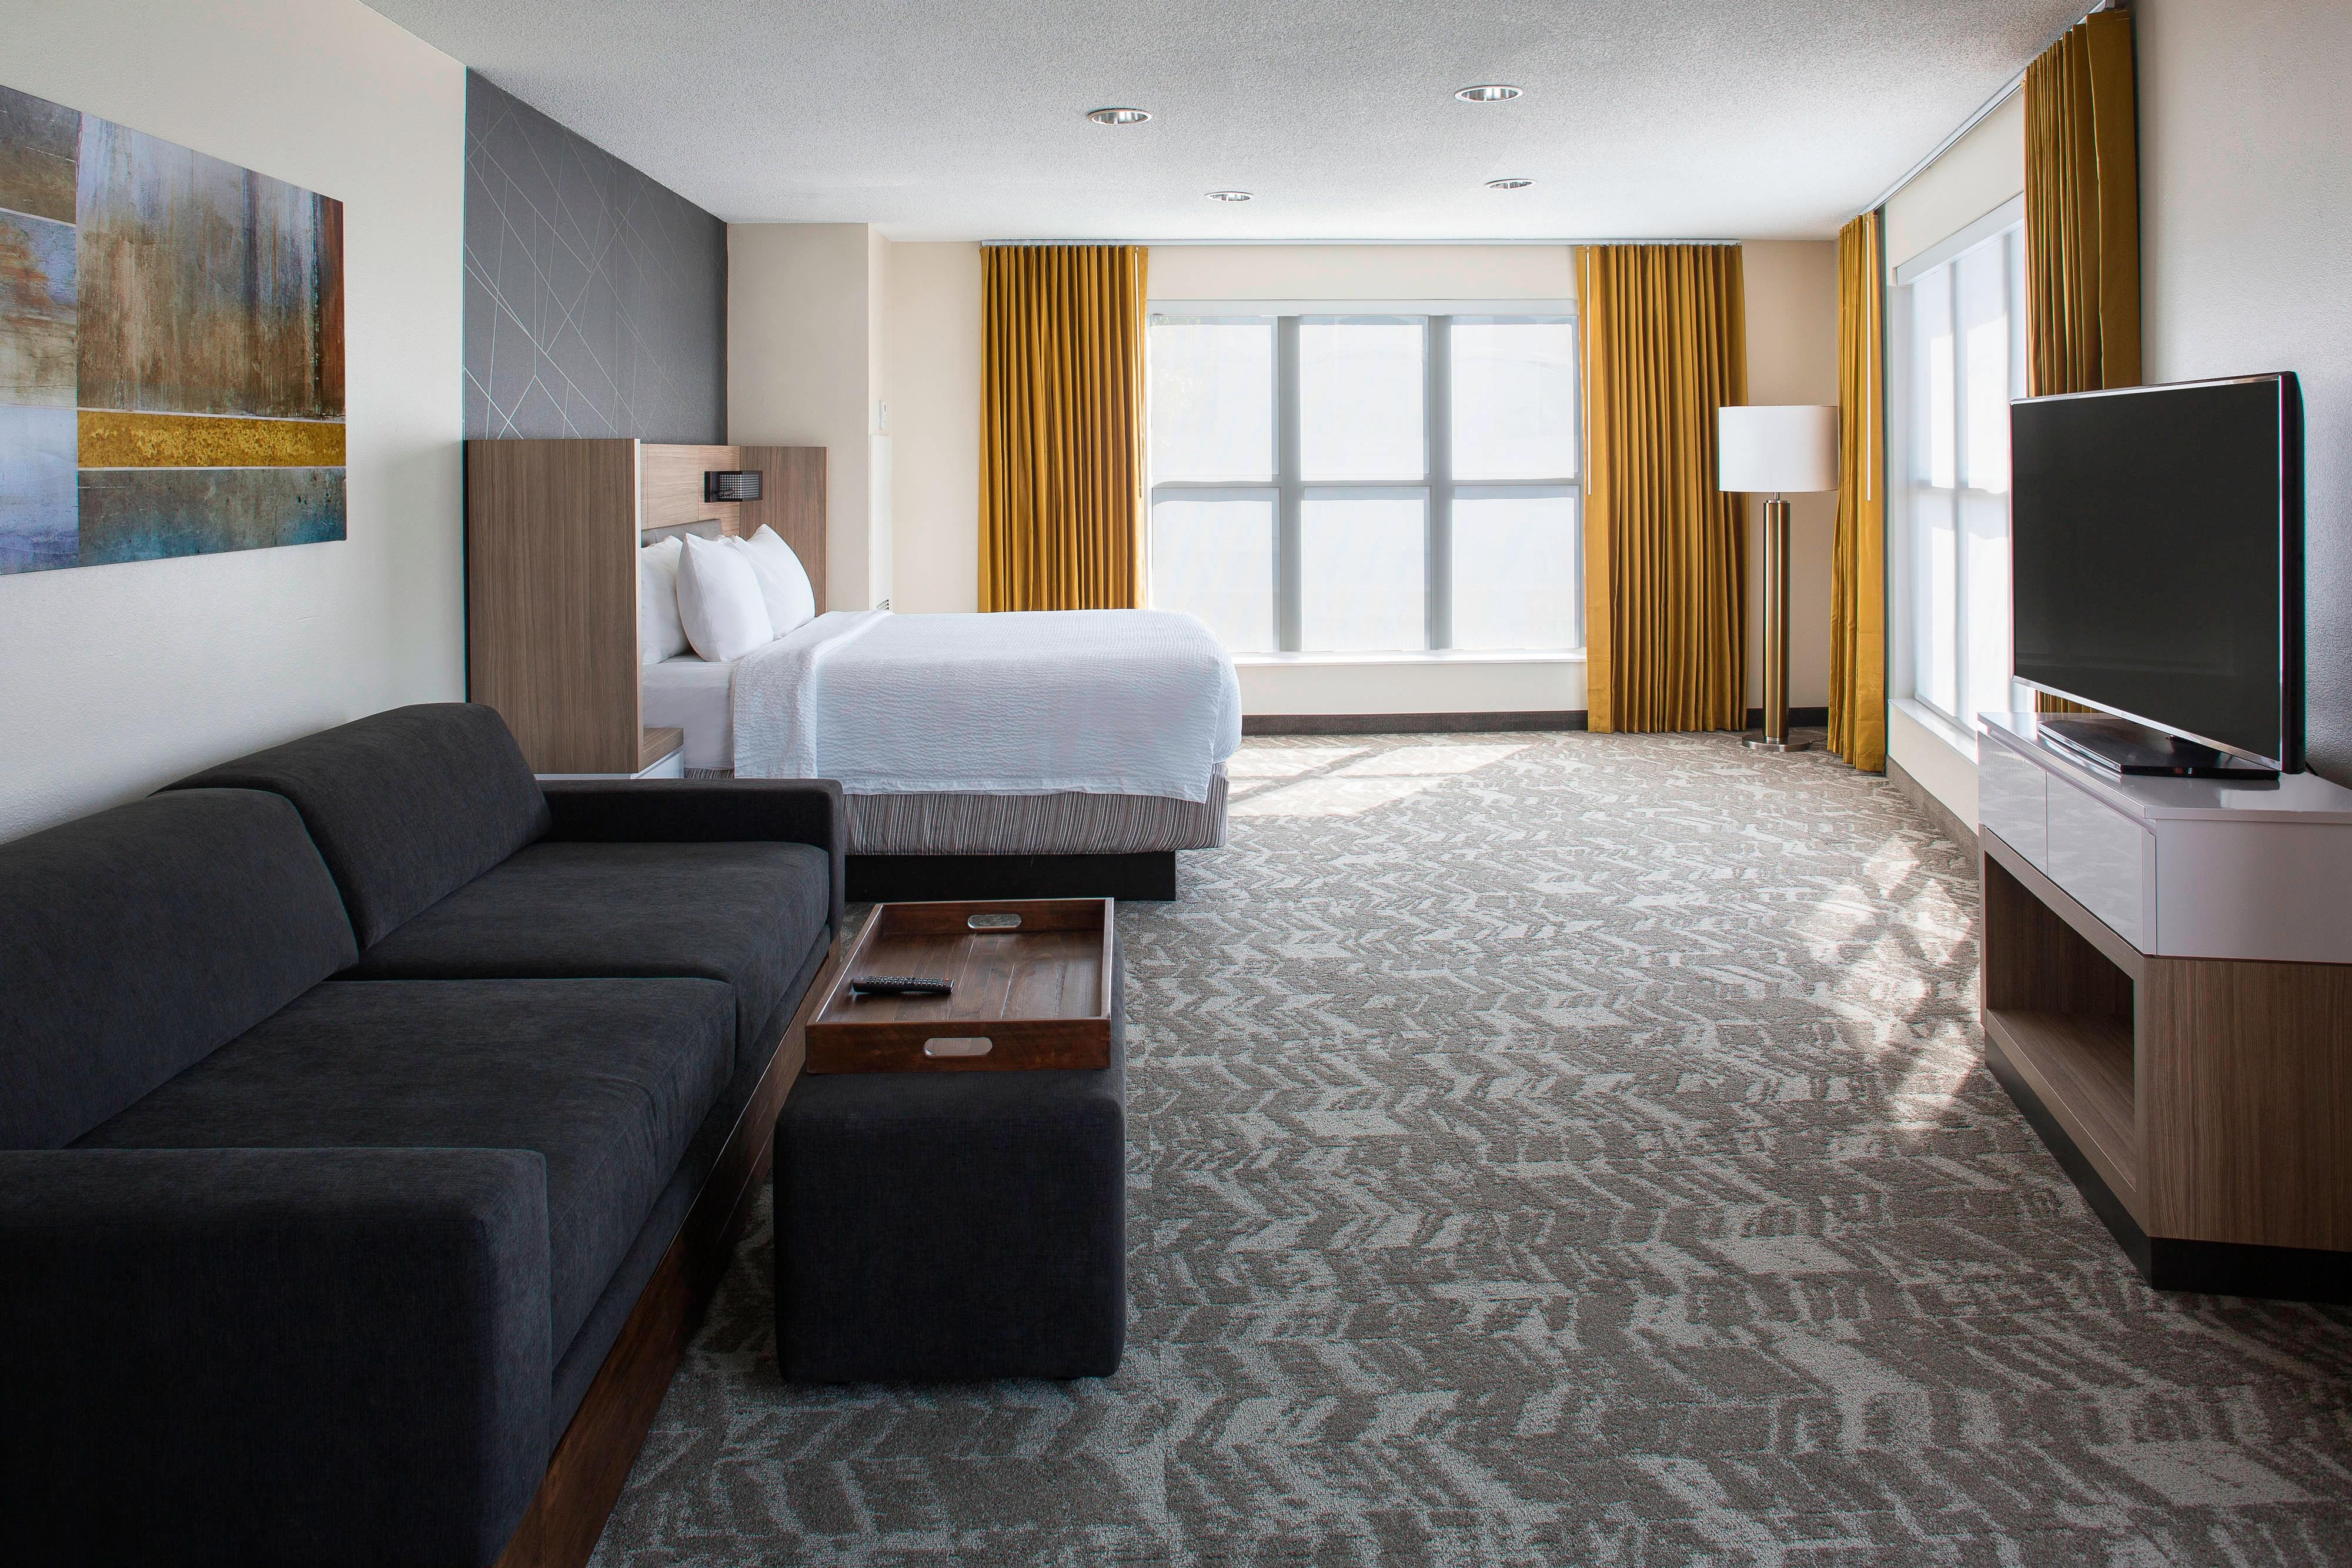 Downtown suites in new orleans la springhill suites new - Suites in new orleans with 2 bedrooms ...